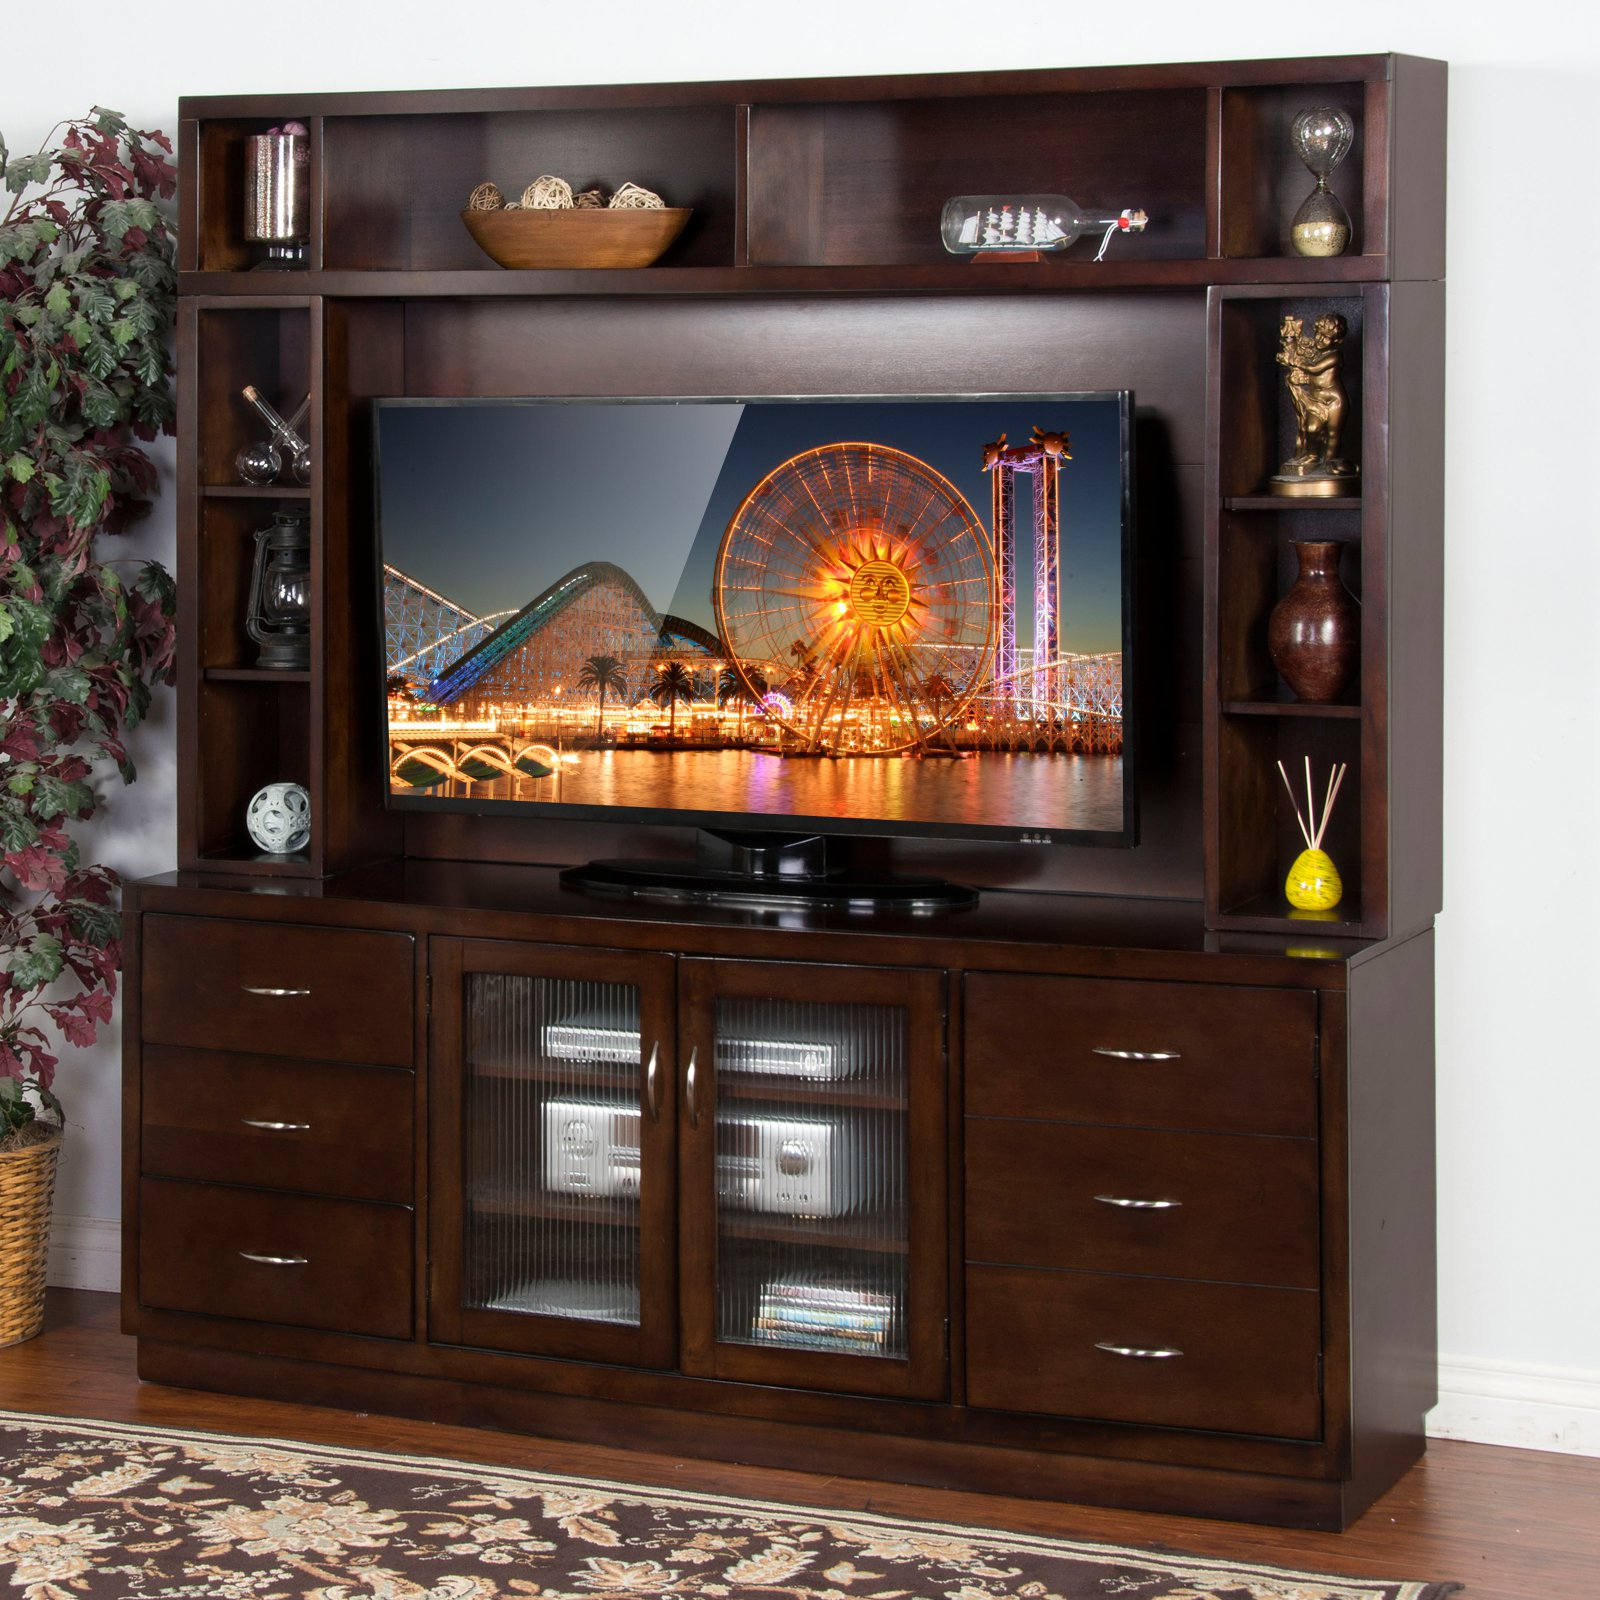 Sunny Designs Espresso 72 in. TV Console